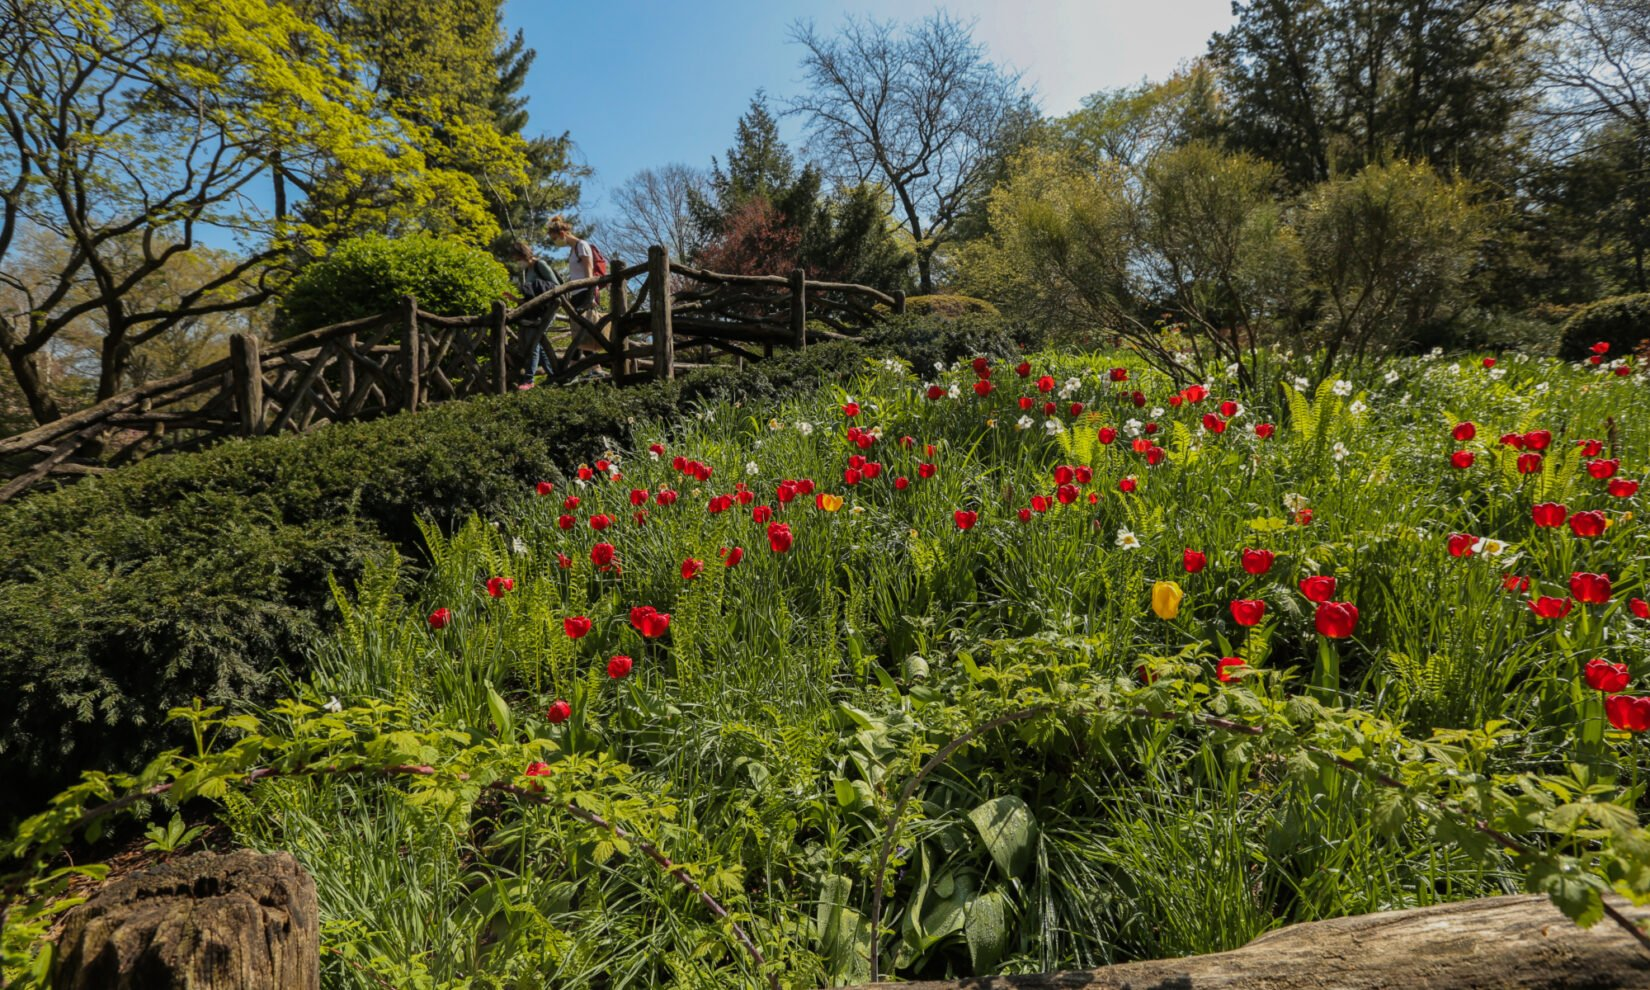 Intricate, natural plantings and rustic features are highlights of the garden.